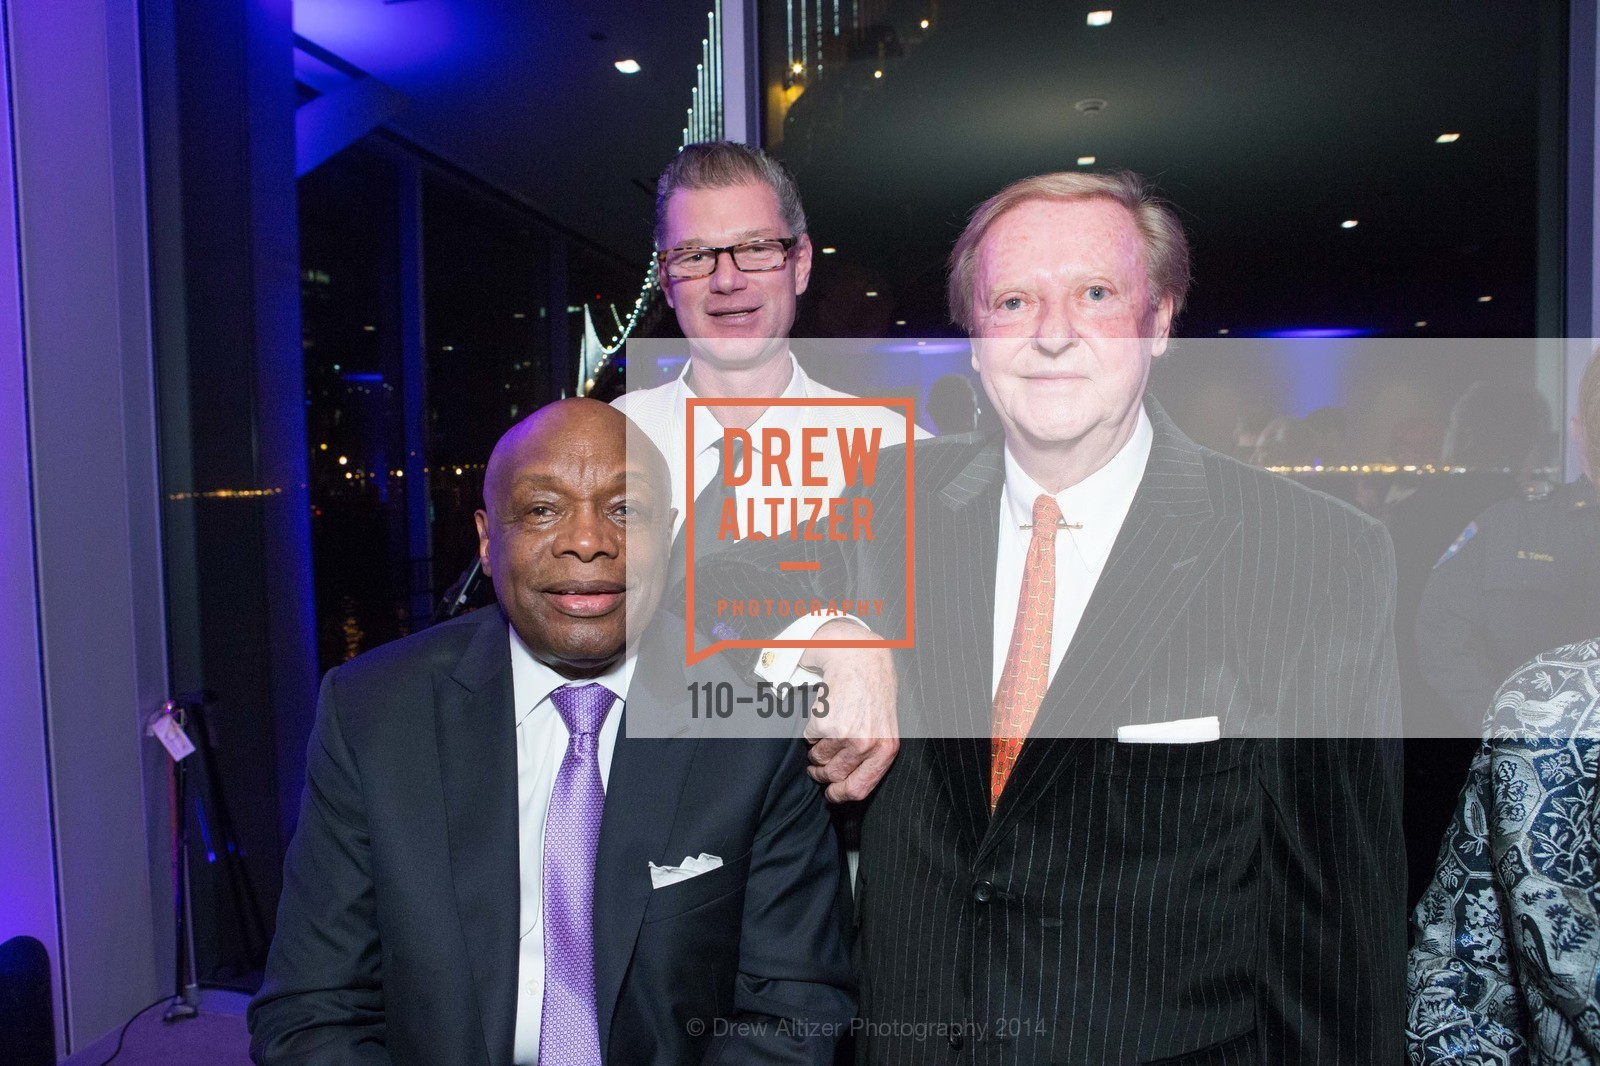 Willie Brown, Photo #110-5013